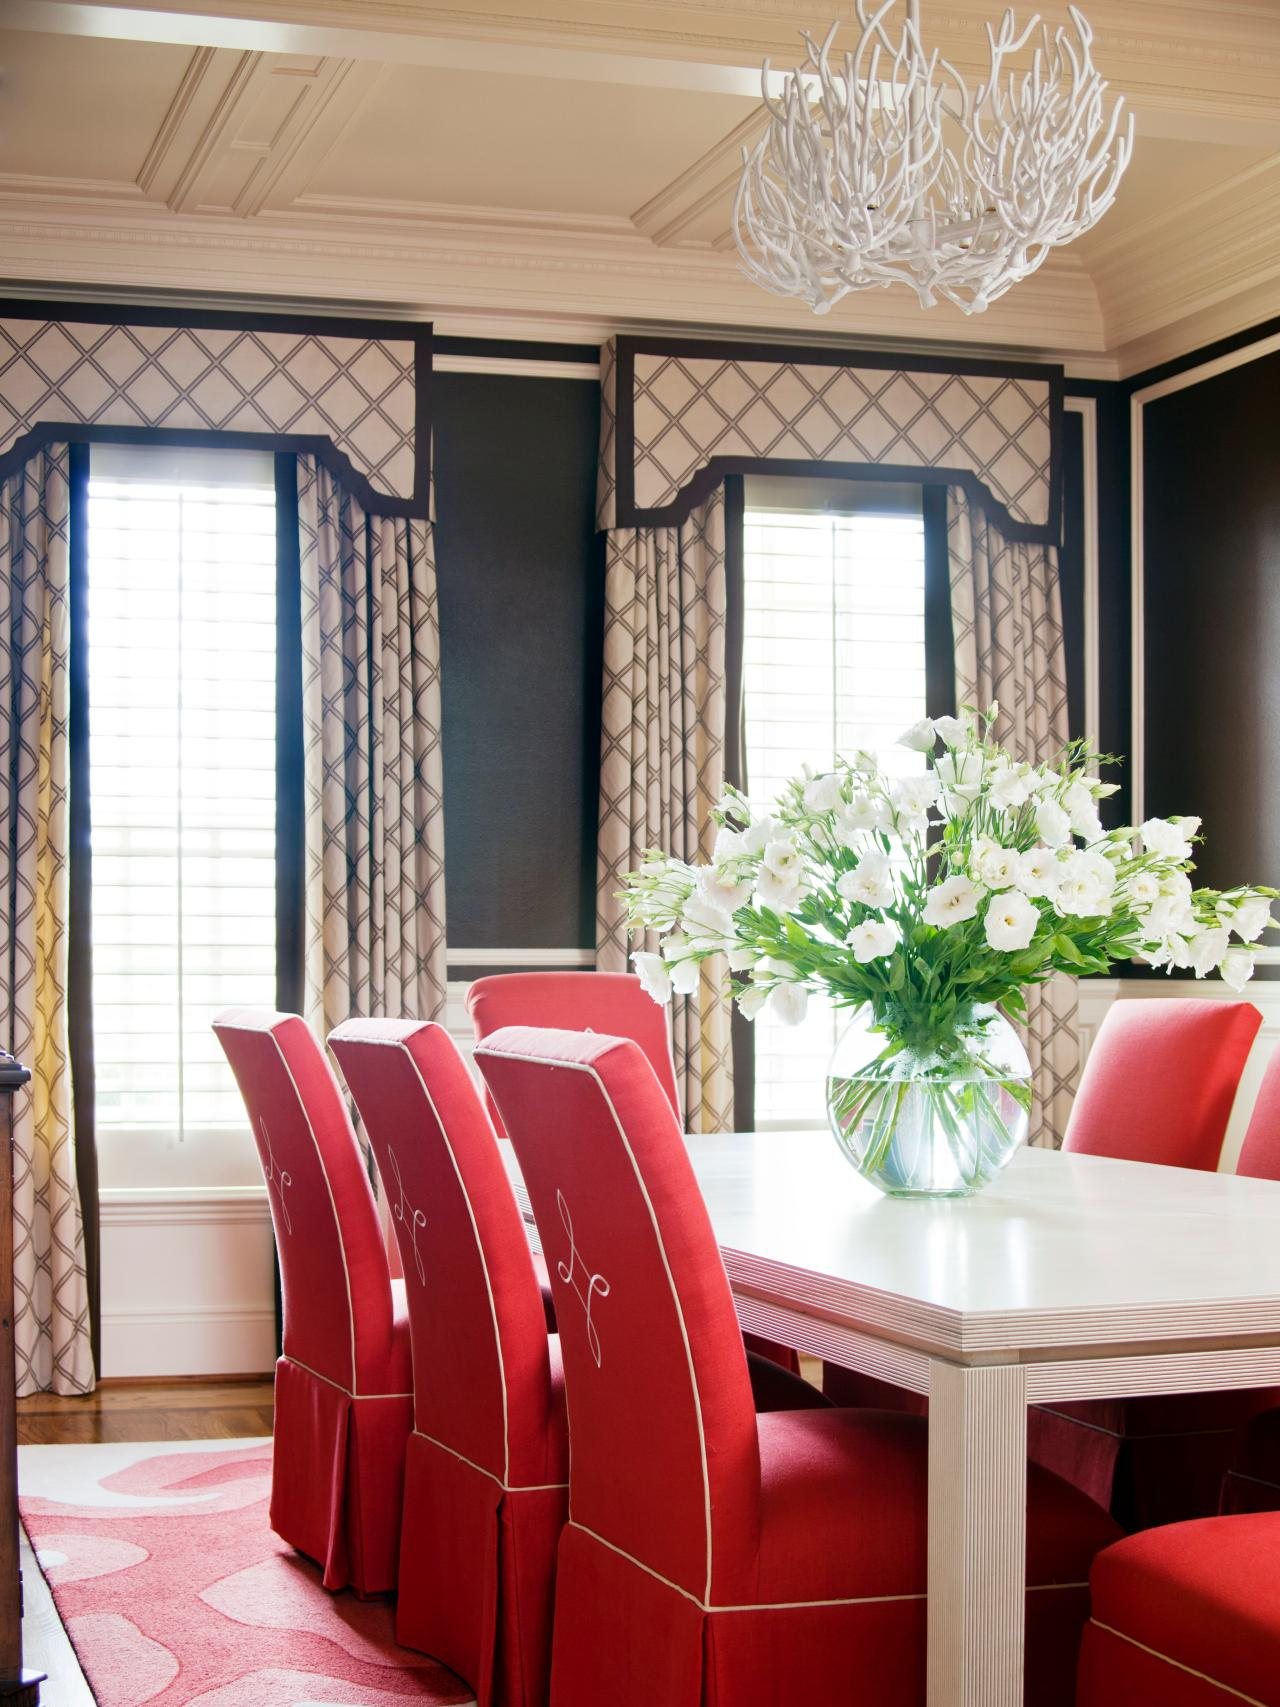 The Best Window Treatments for Your Style